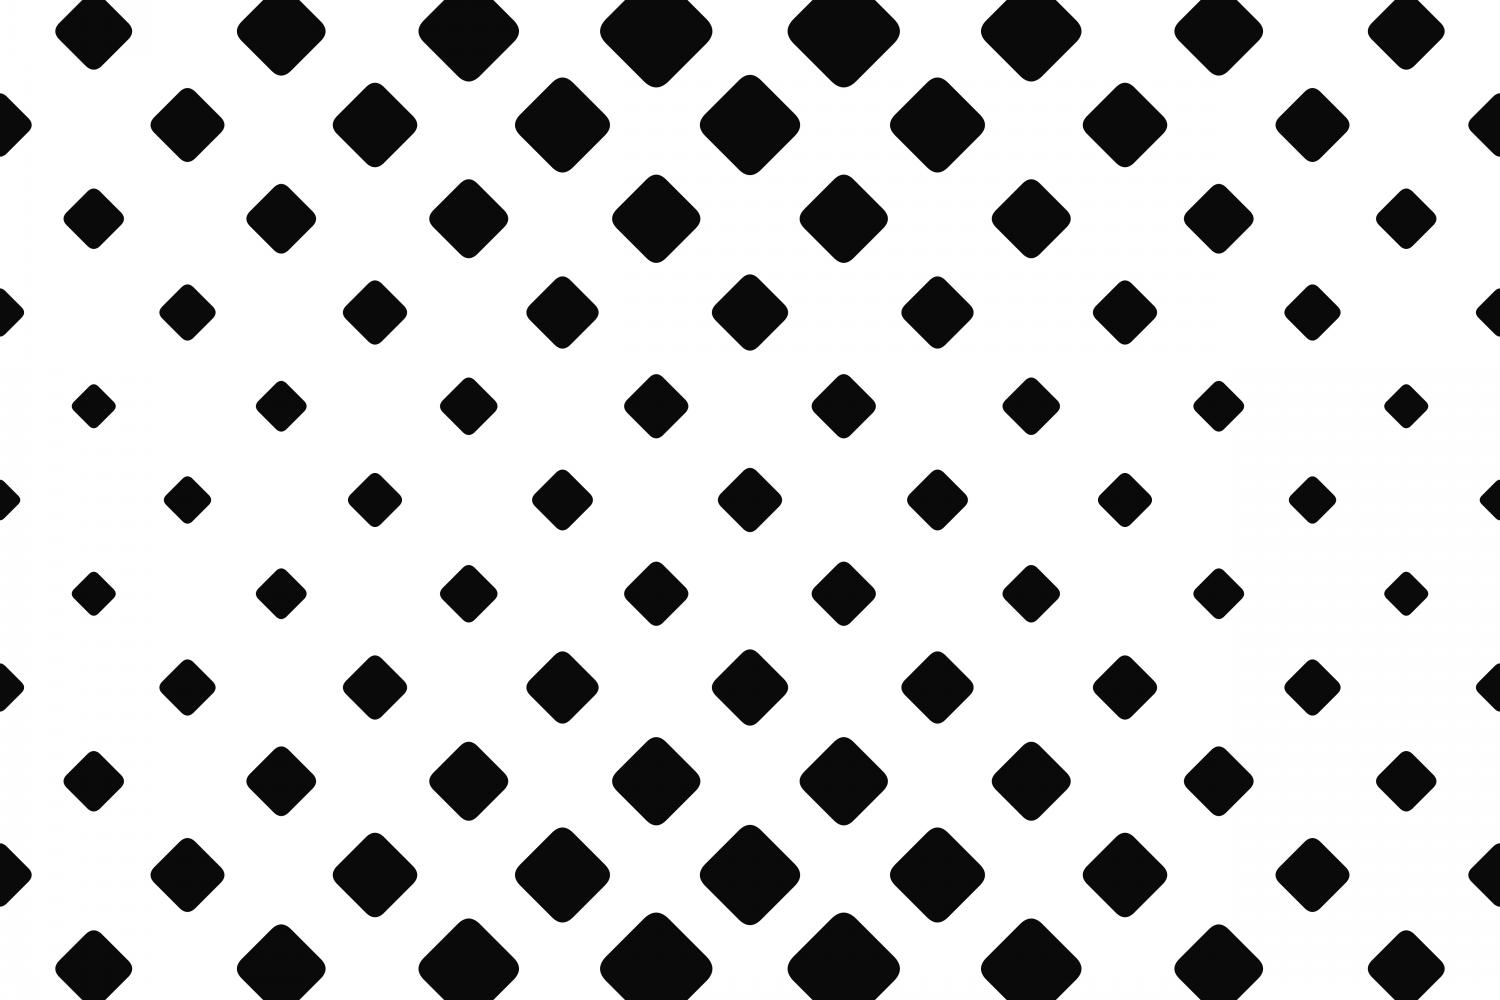 Download Free Monochrome Geometrical Square Pattern Graphic By Davidzydd for Cricut Explore, Silhouette and other cutting machines.